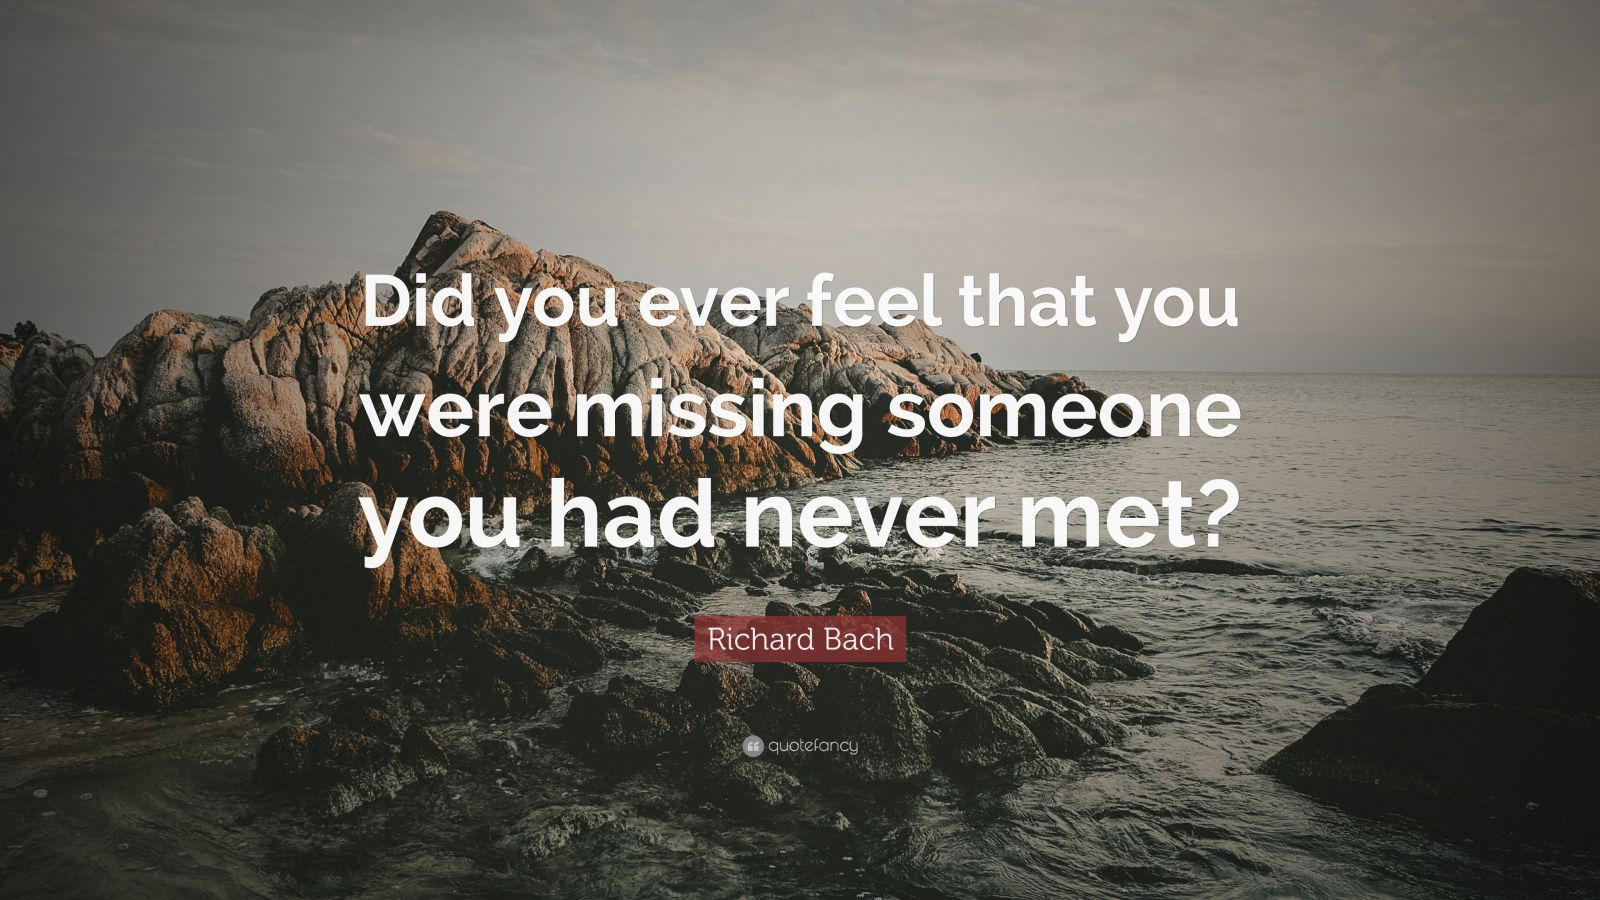 Richard Bach Quote: Did you ever feel that you were